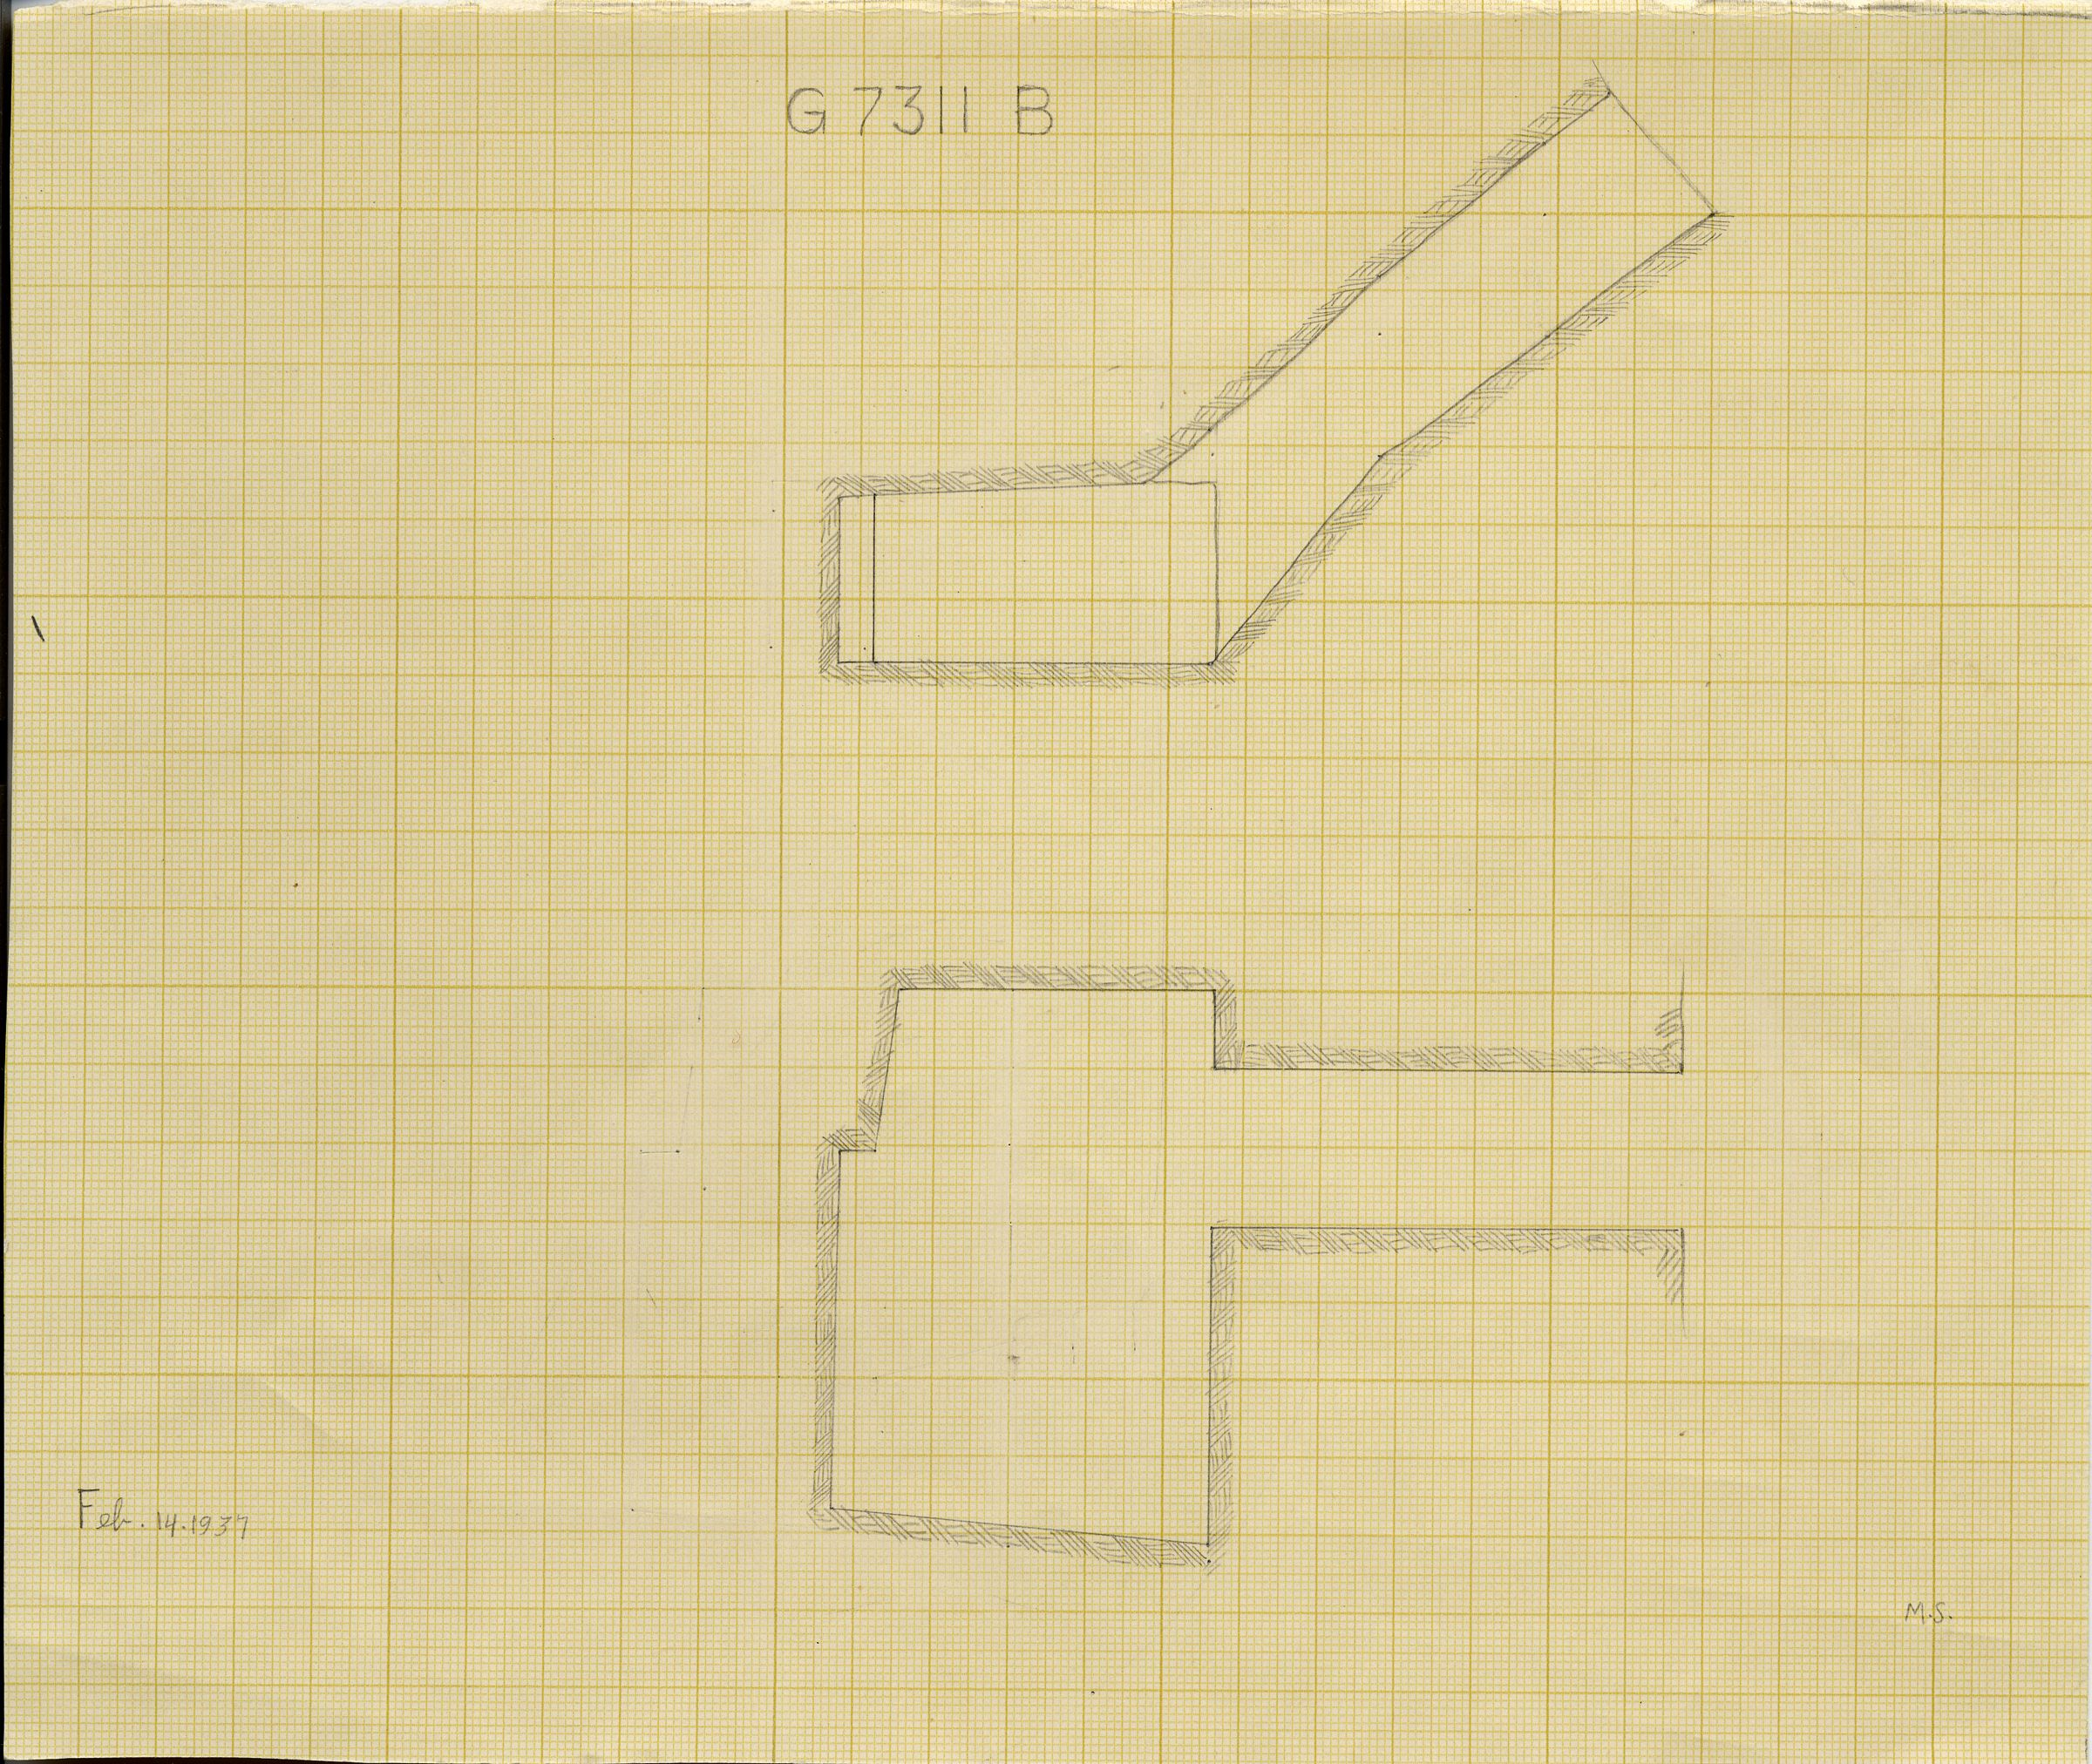 Maps and plans: G 7311, Shaft B